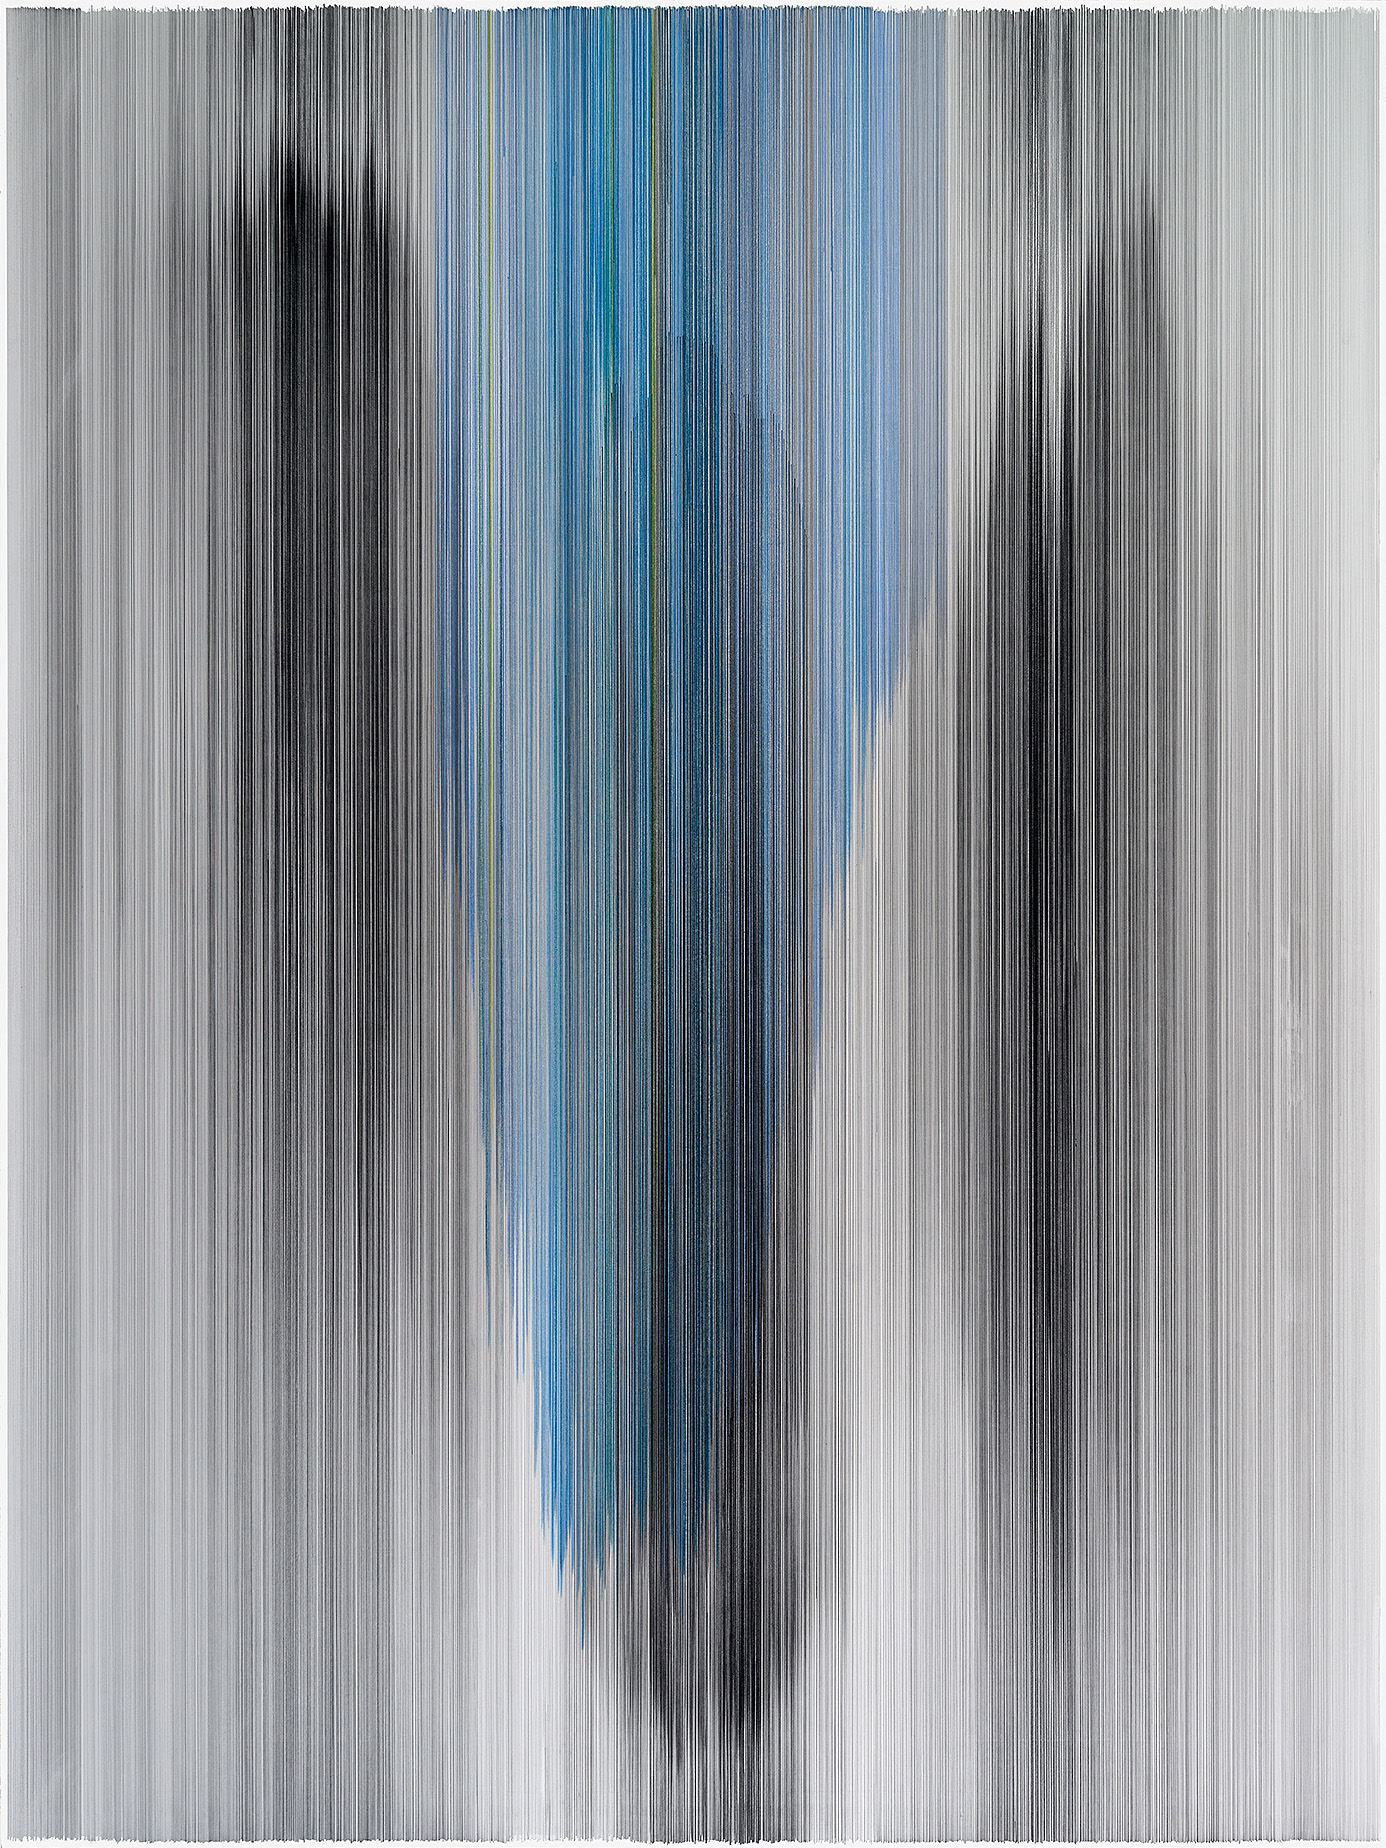 parallel 43  2014 graphite & colored pencil on mat board 60 by 80 inches